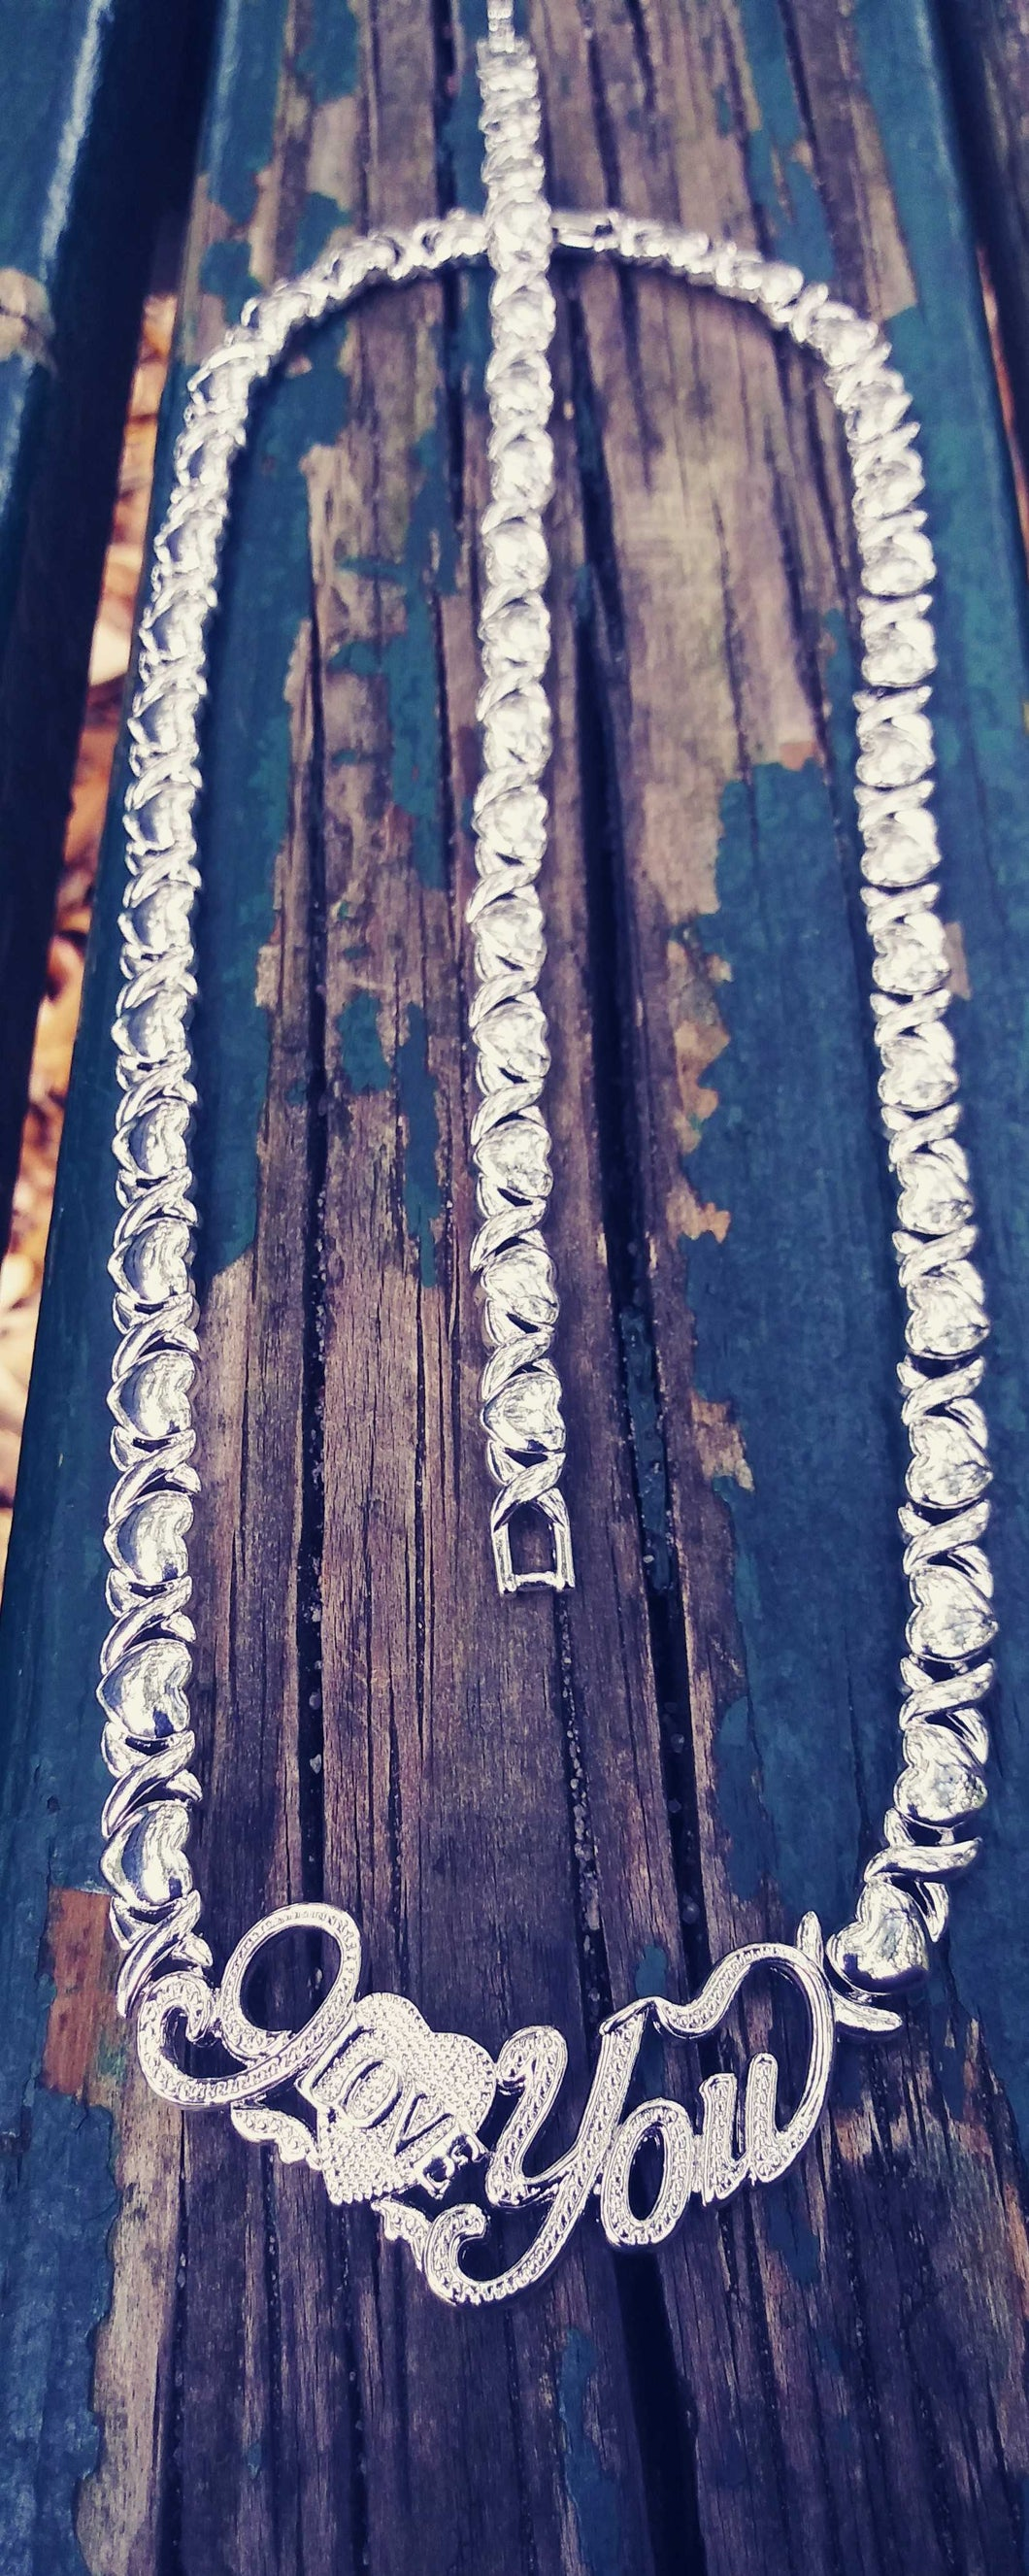 😍😍White Gold filled 💖📿necklace and bracelet